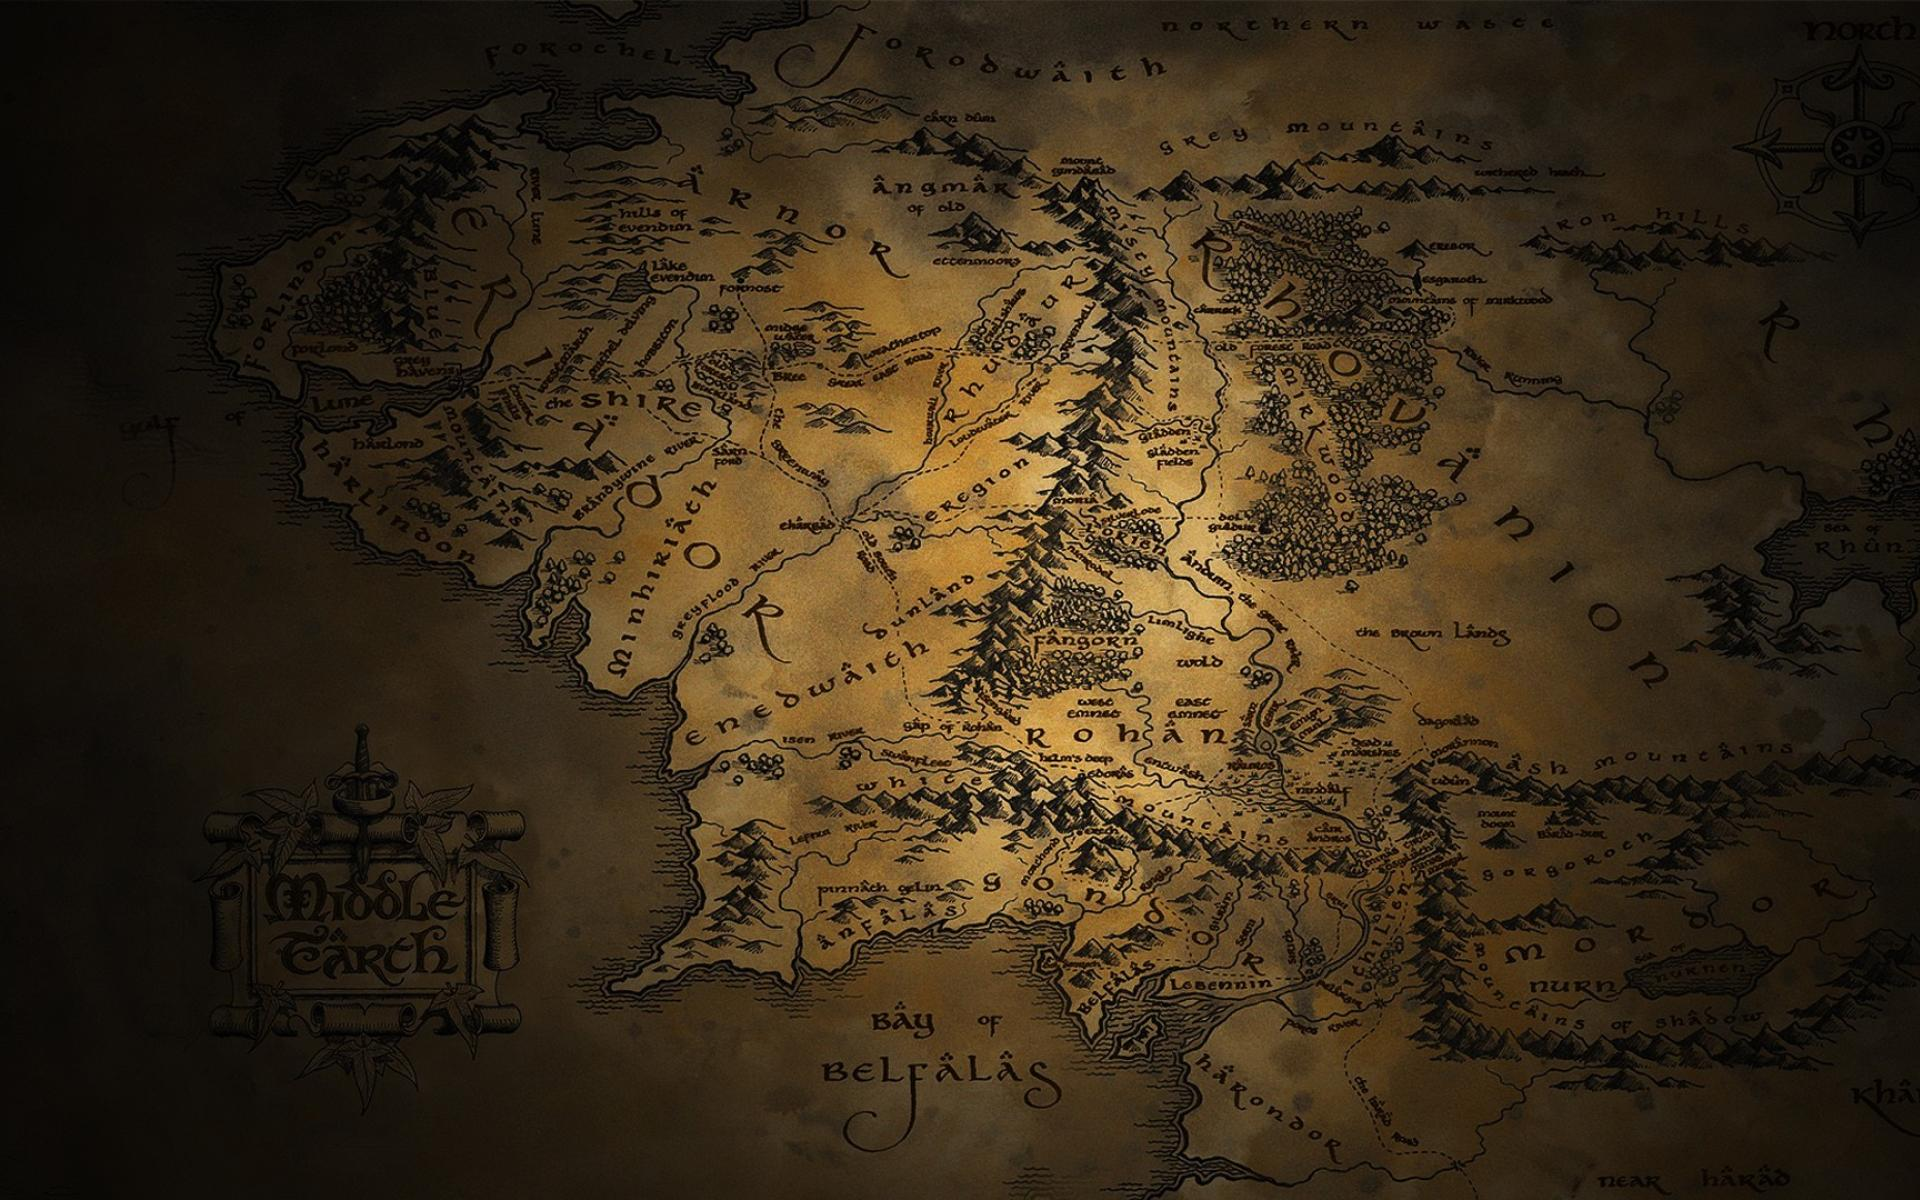 Jrr tolkien middle earth the lord of rings maps wallpaper 86783 1920x1200